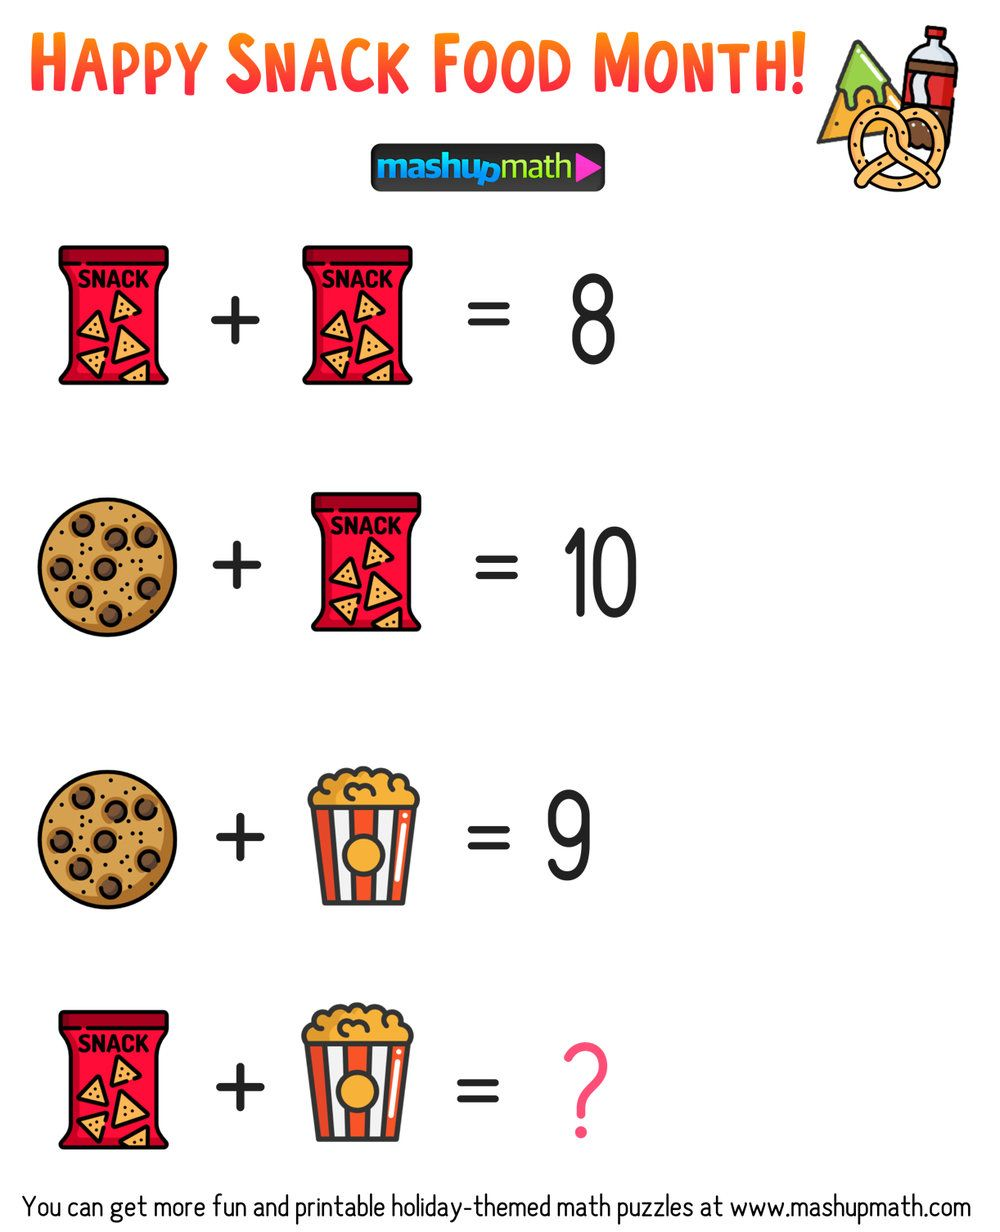 hight resolution of Free Math Brain Teaser Puzzles for Kids in Grades 1-6 to Celebrate Snack  Food Month! — Mashup Math   Maths puzzles